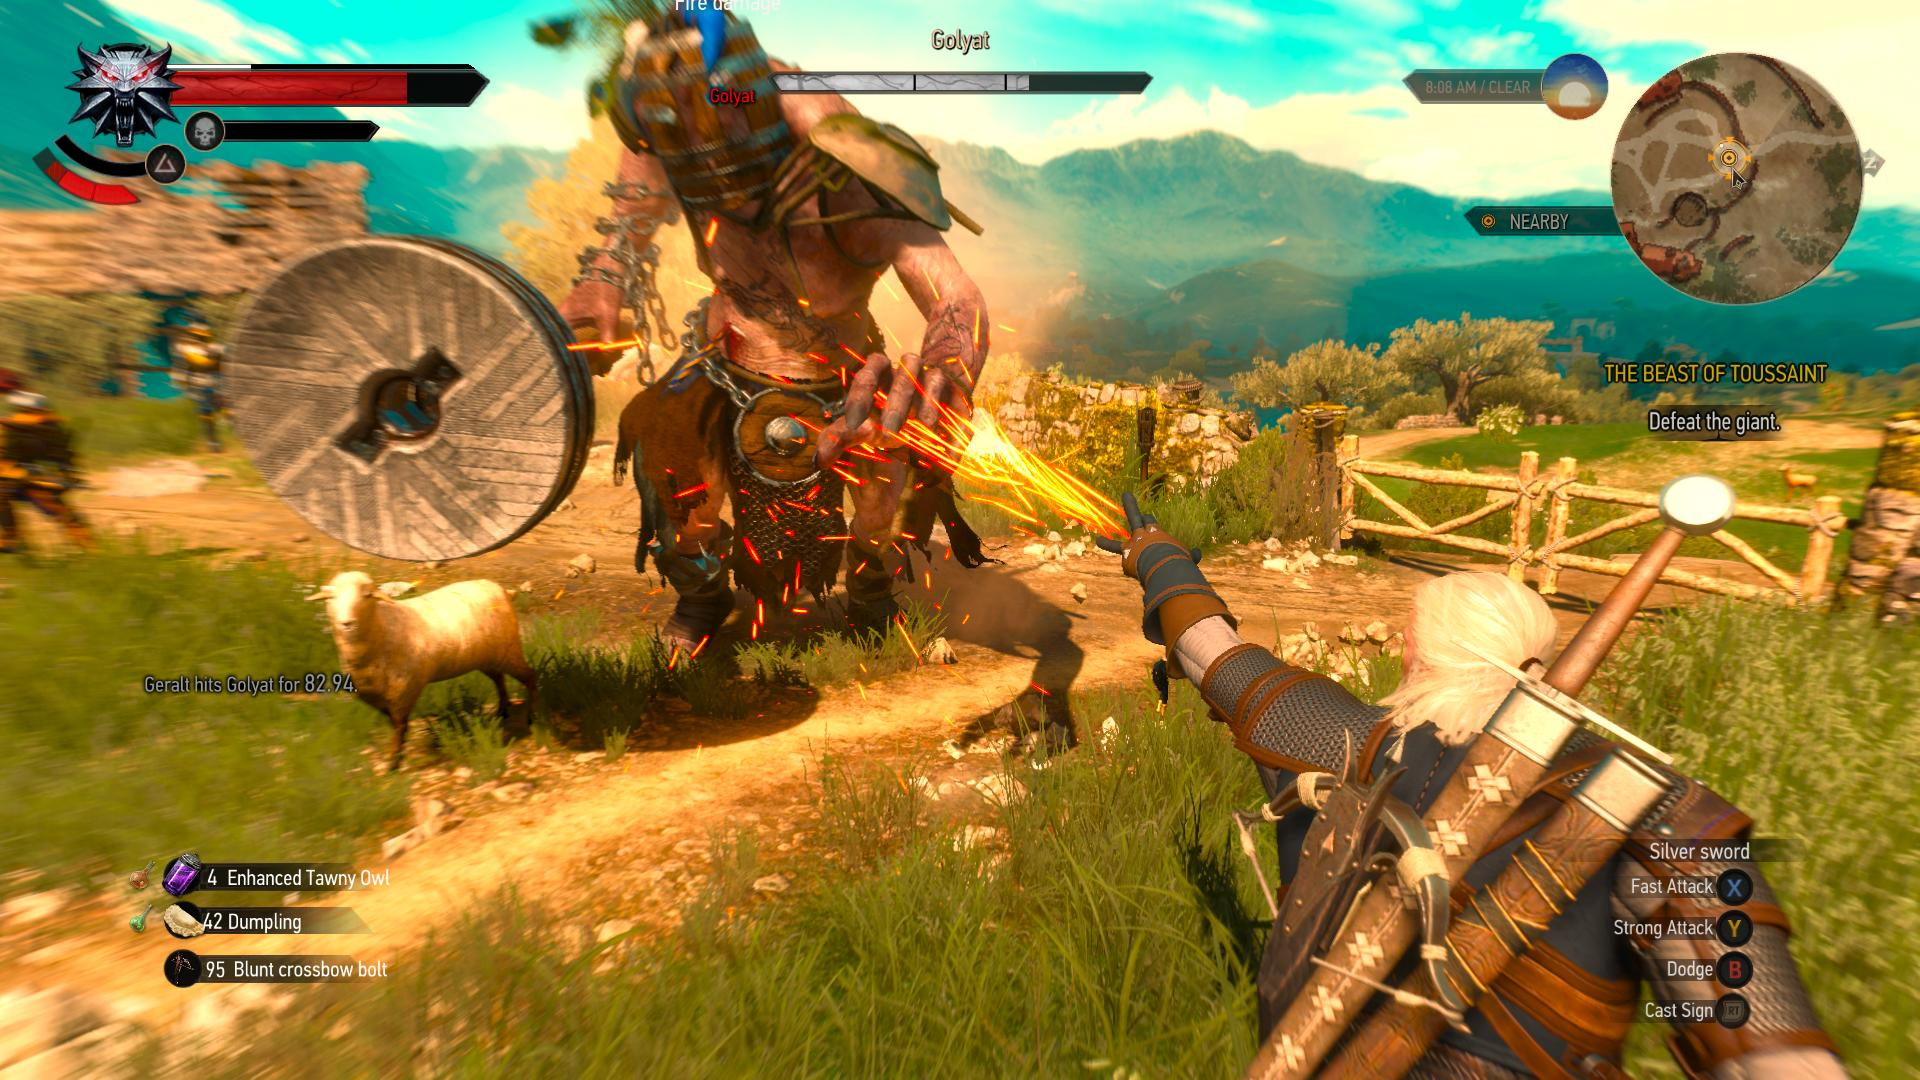 The Witcher 3: Wild Hunt – Blood and Wine for MacBook gameplay